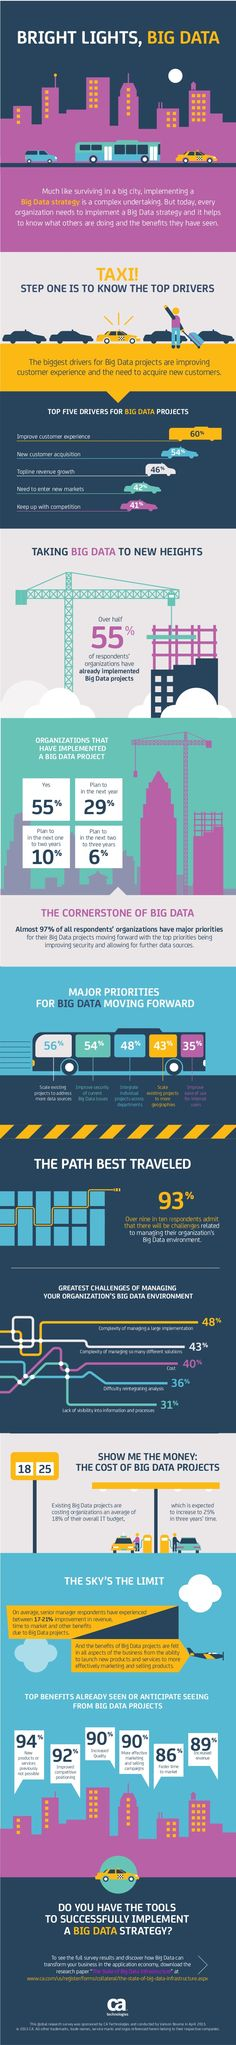 Bright Lights, Big Data: How does your Big Data project compare?